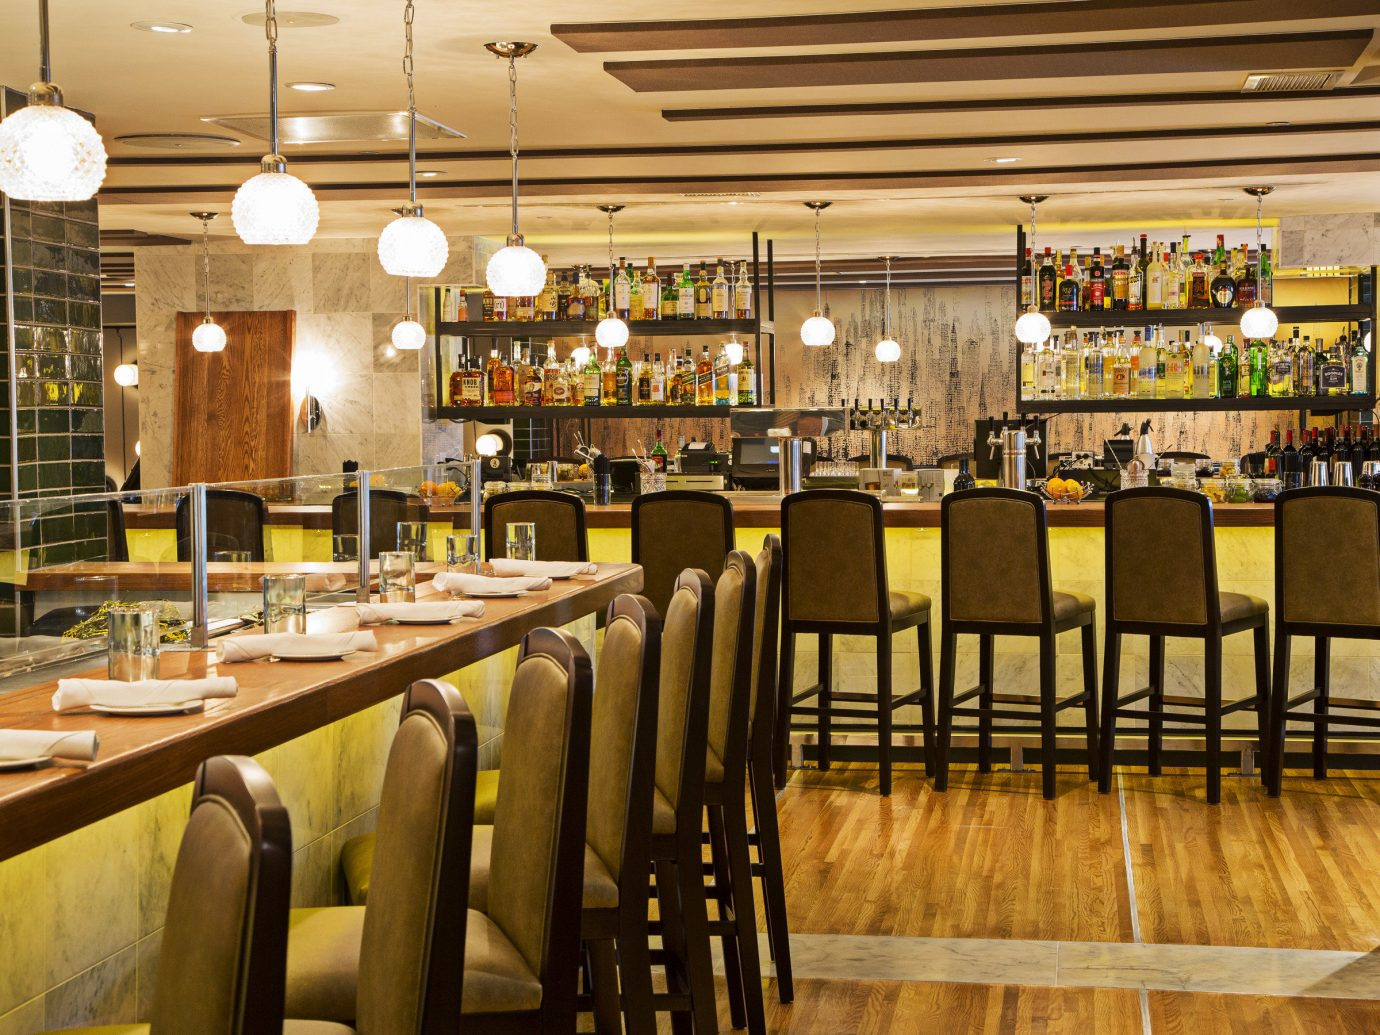 Hotels indoor table floor chair restaurant meal café cafeteria interior design Bar food court coffeehouse long store dining room